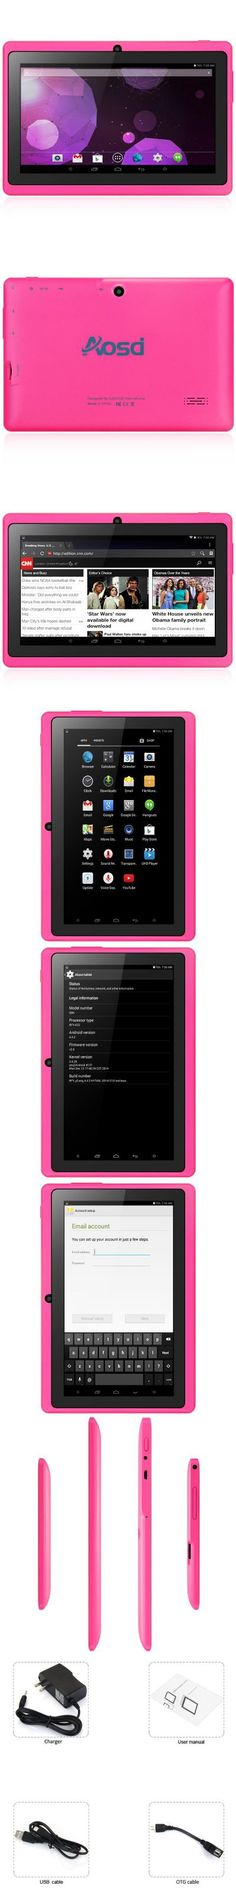 Q83 6.9 inch Android 4.4 Tablet PC